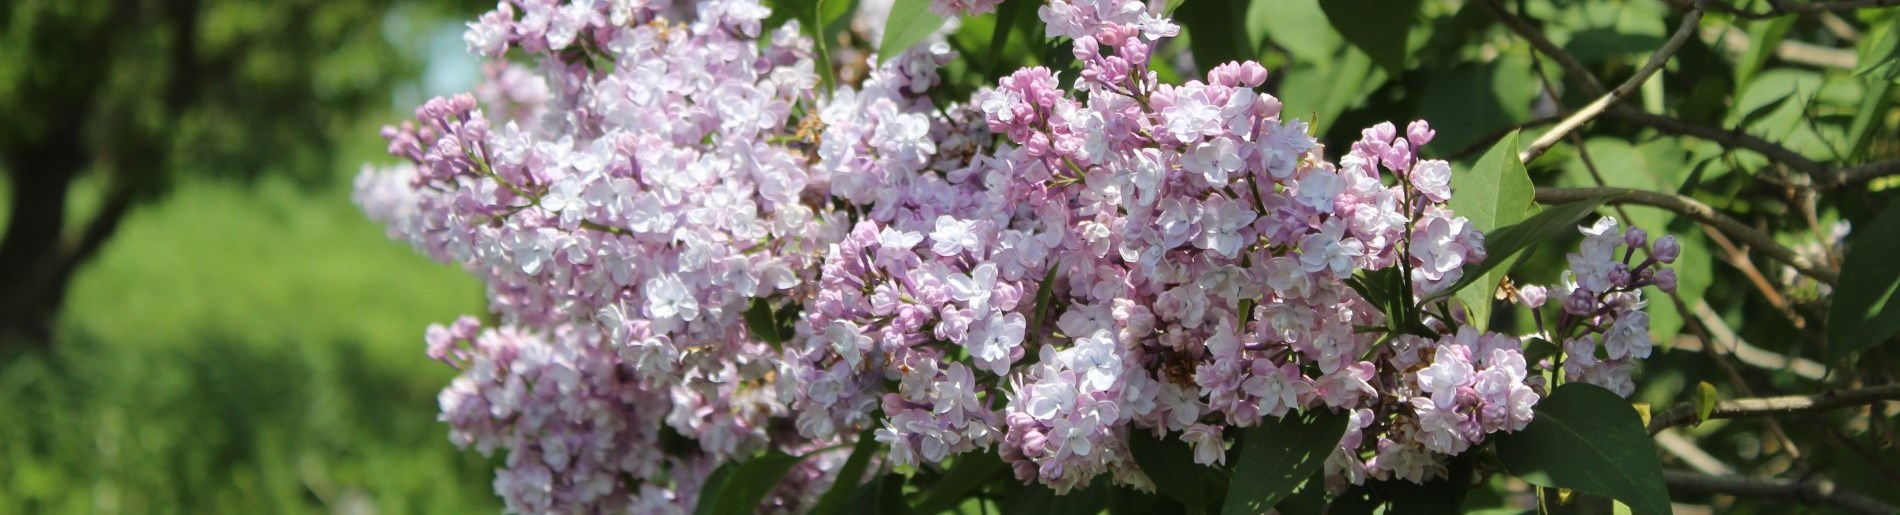 light purple flowers with green leaves